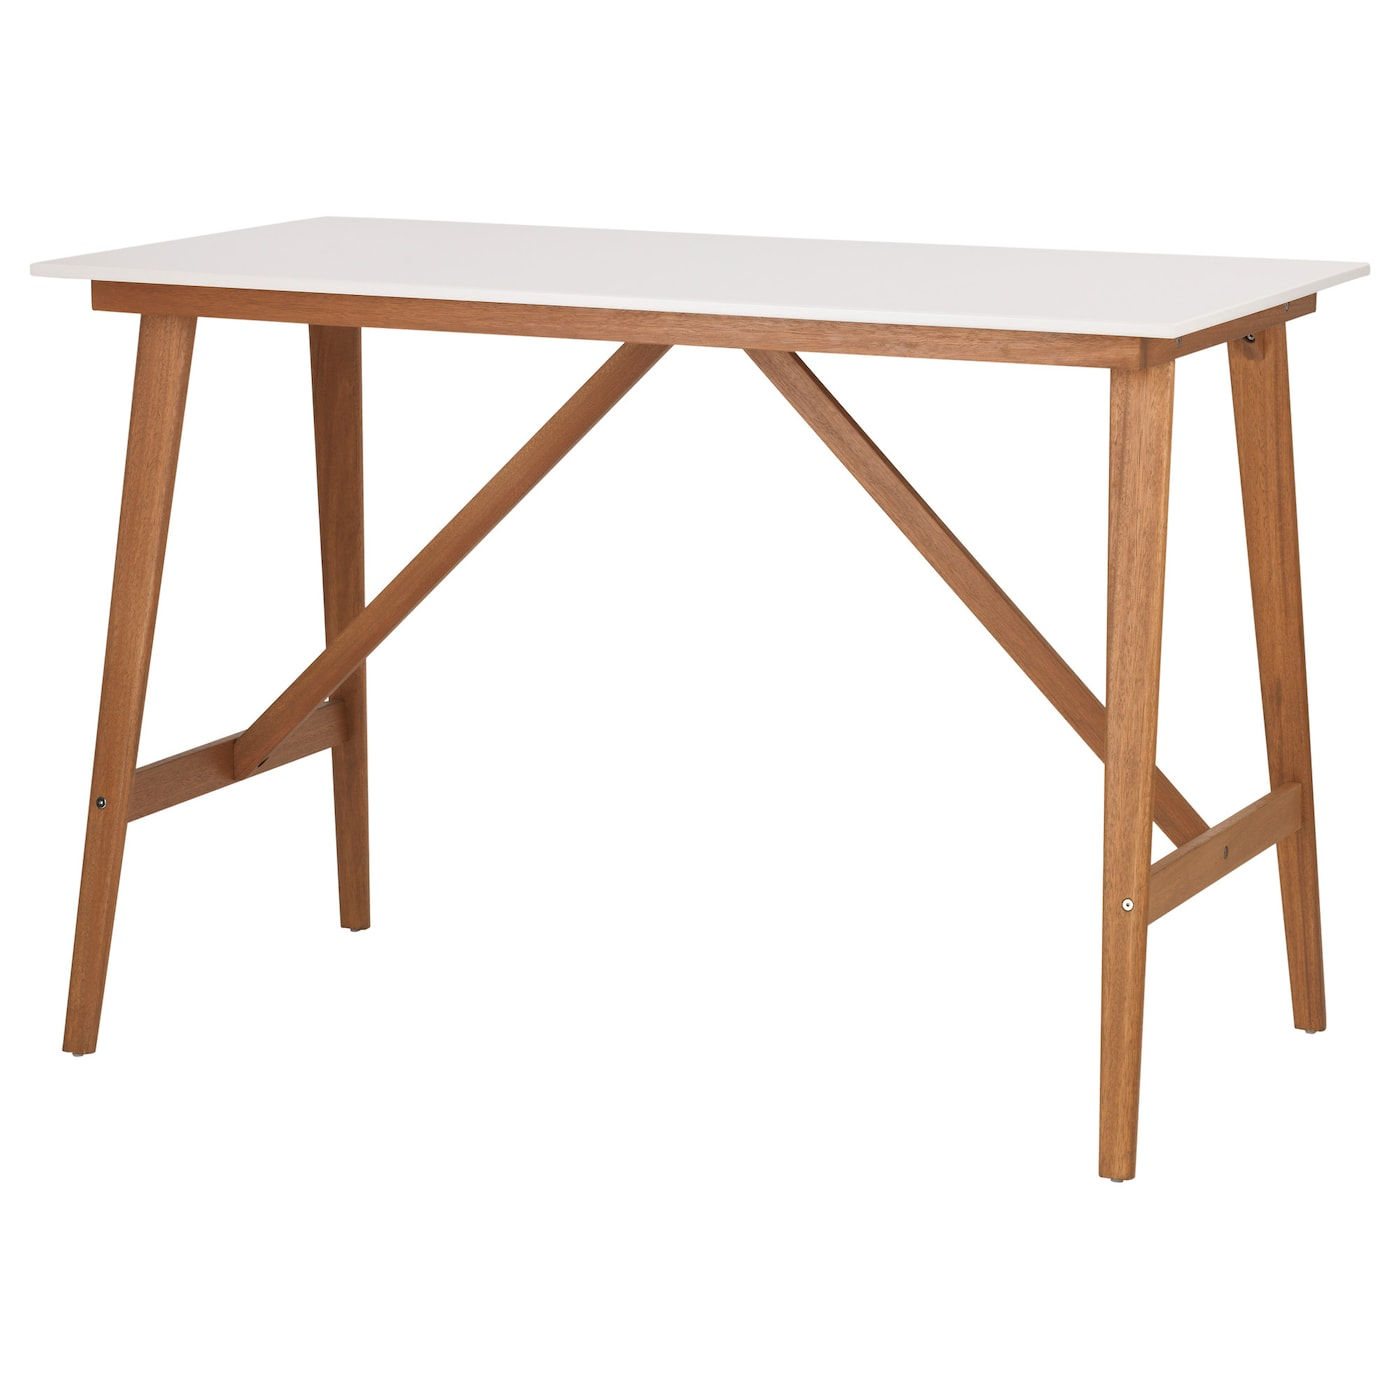 fanbyn bar table white 140x78x95 cm ikea